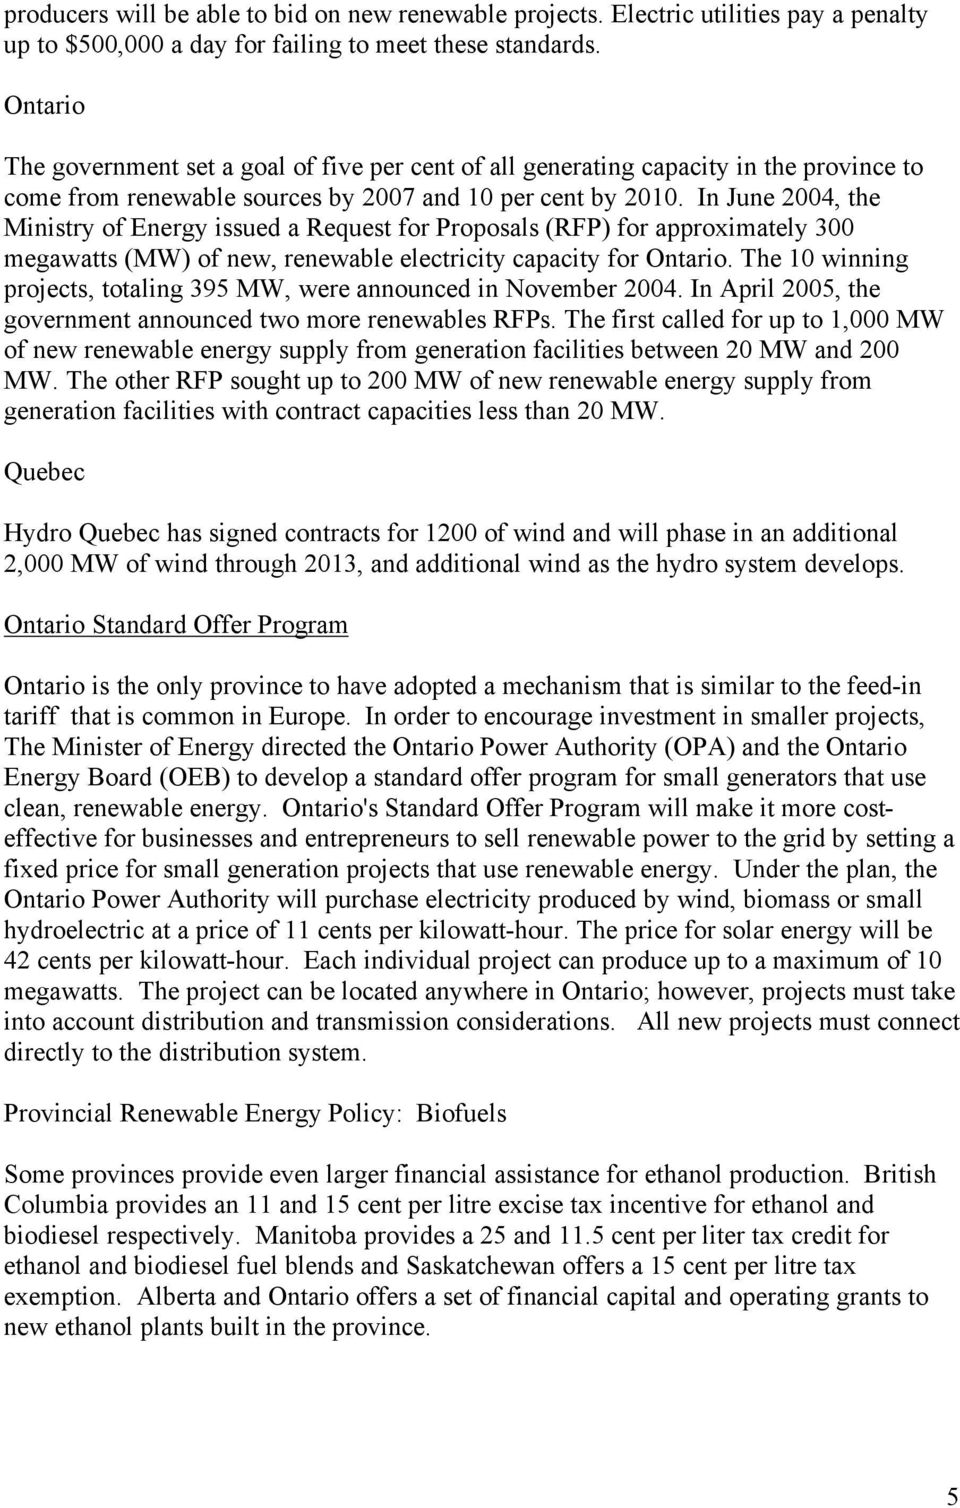 In June 2004, the Ministry of Energy issued a Request for Proposals (RFP) for approximately 300 megawatts (MW) of new, renewable electricity capacity for Ontario.